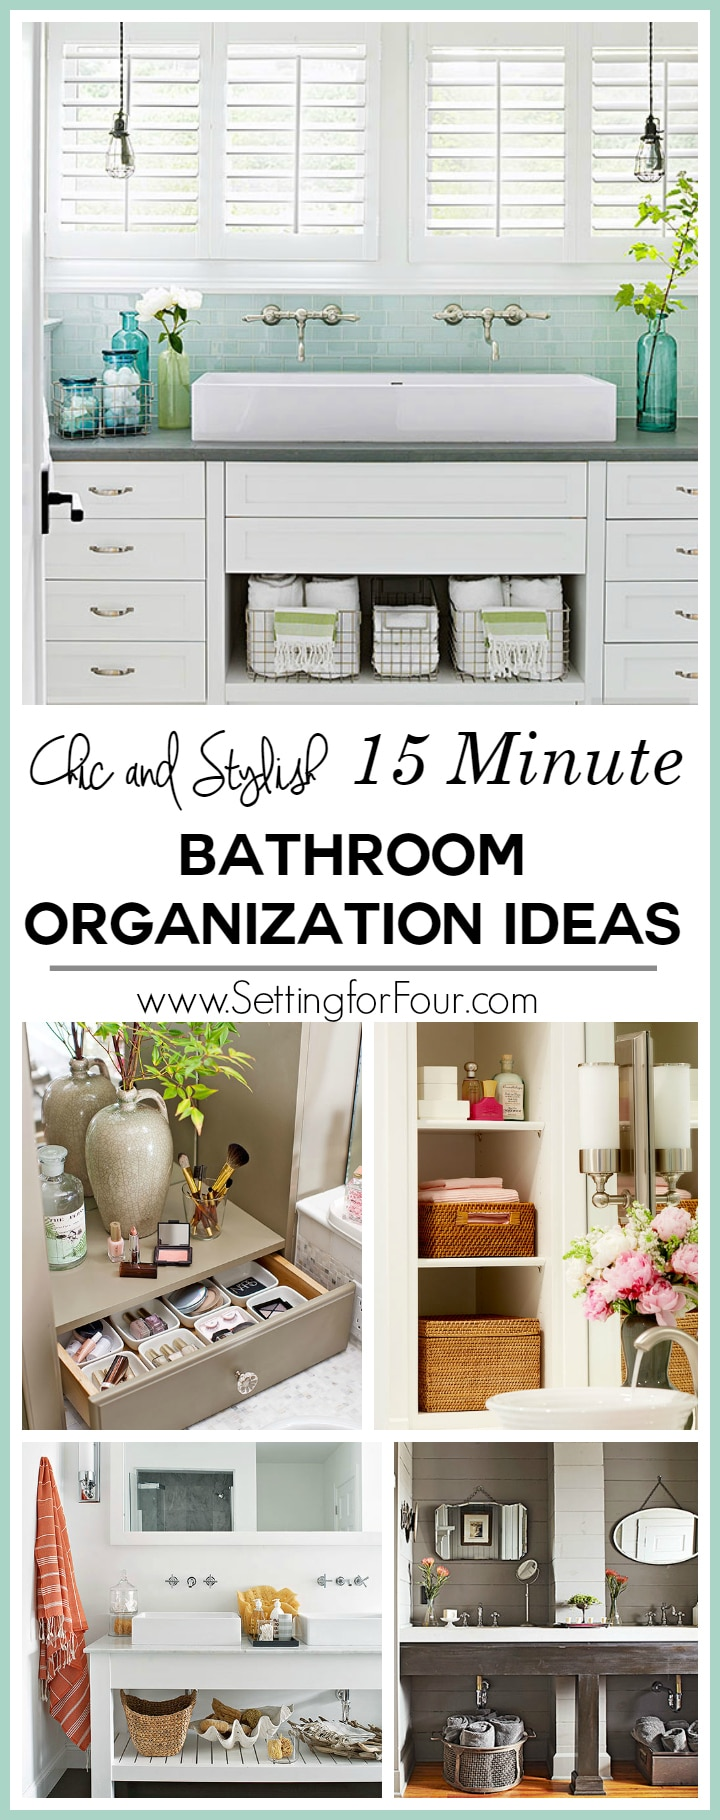 15 minute bathroom organization tips setting for four for Bathroom organization ideas